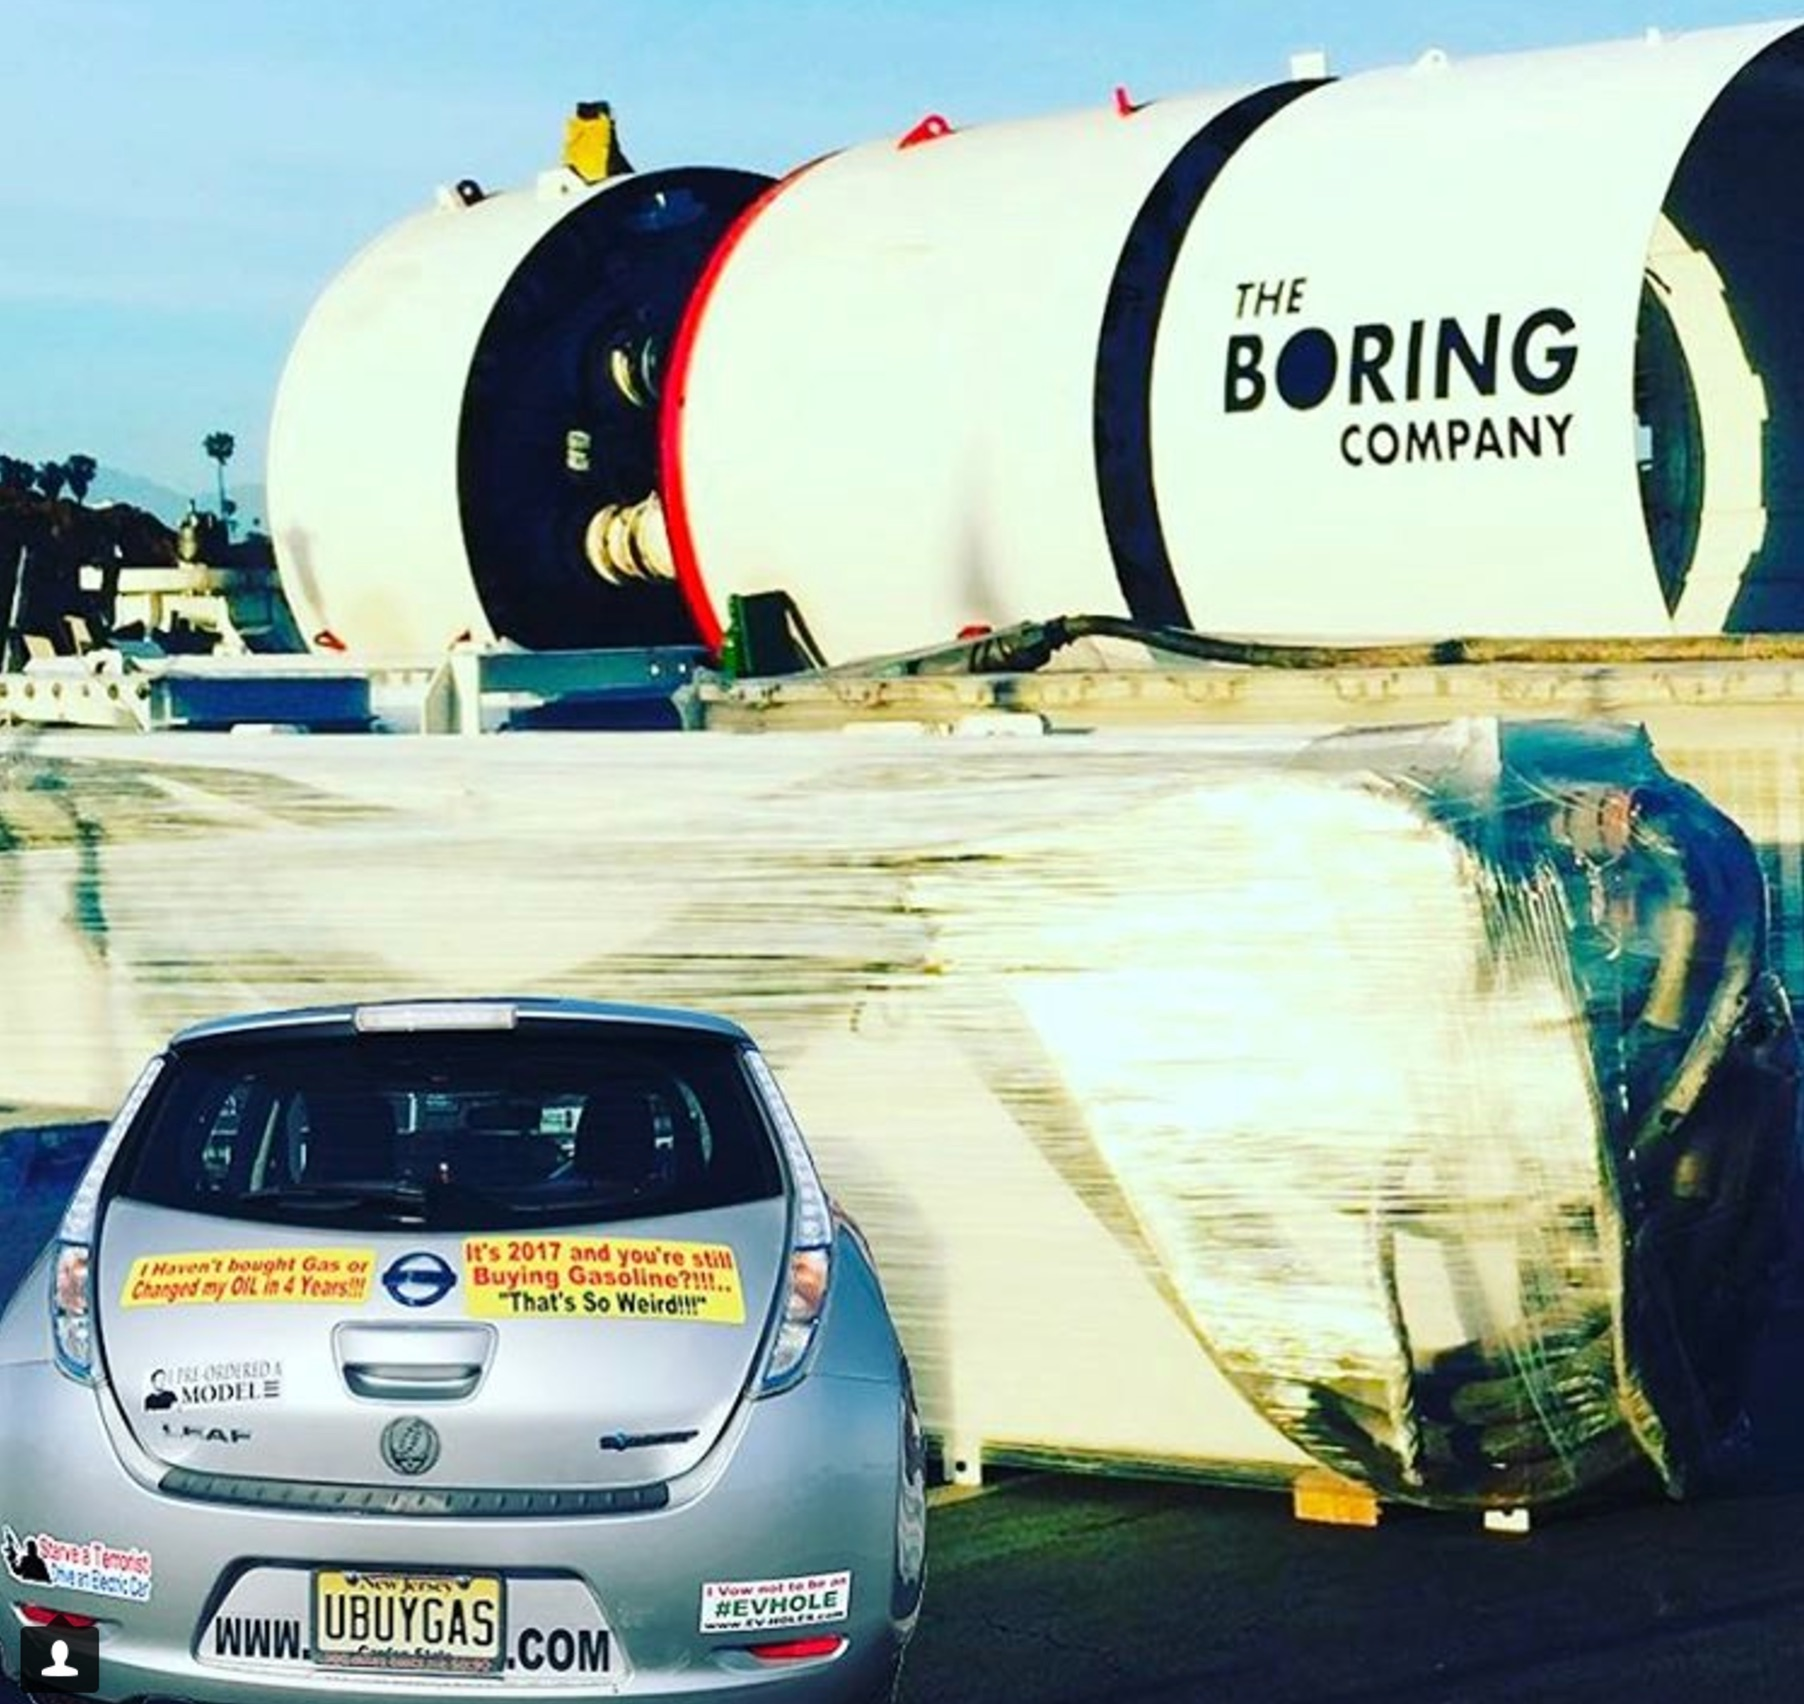 Musk-Boring-Company-equipment-SpaceX-prius